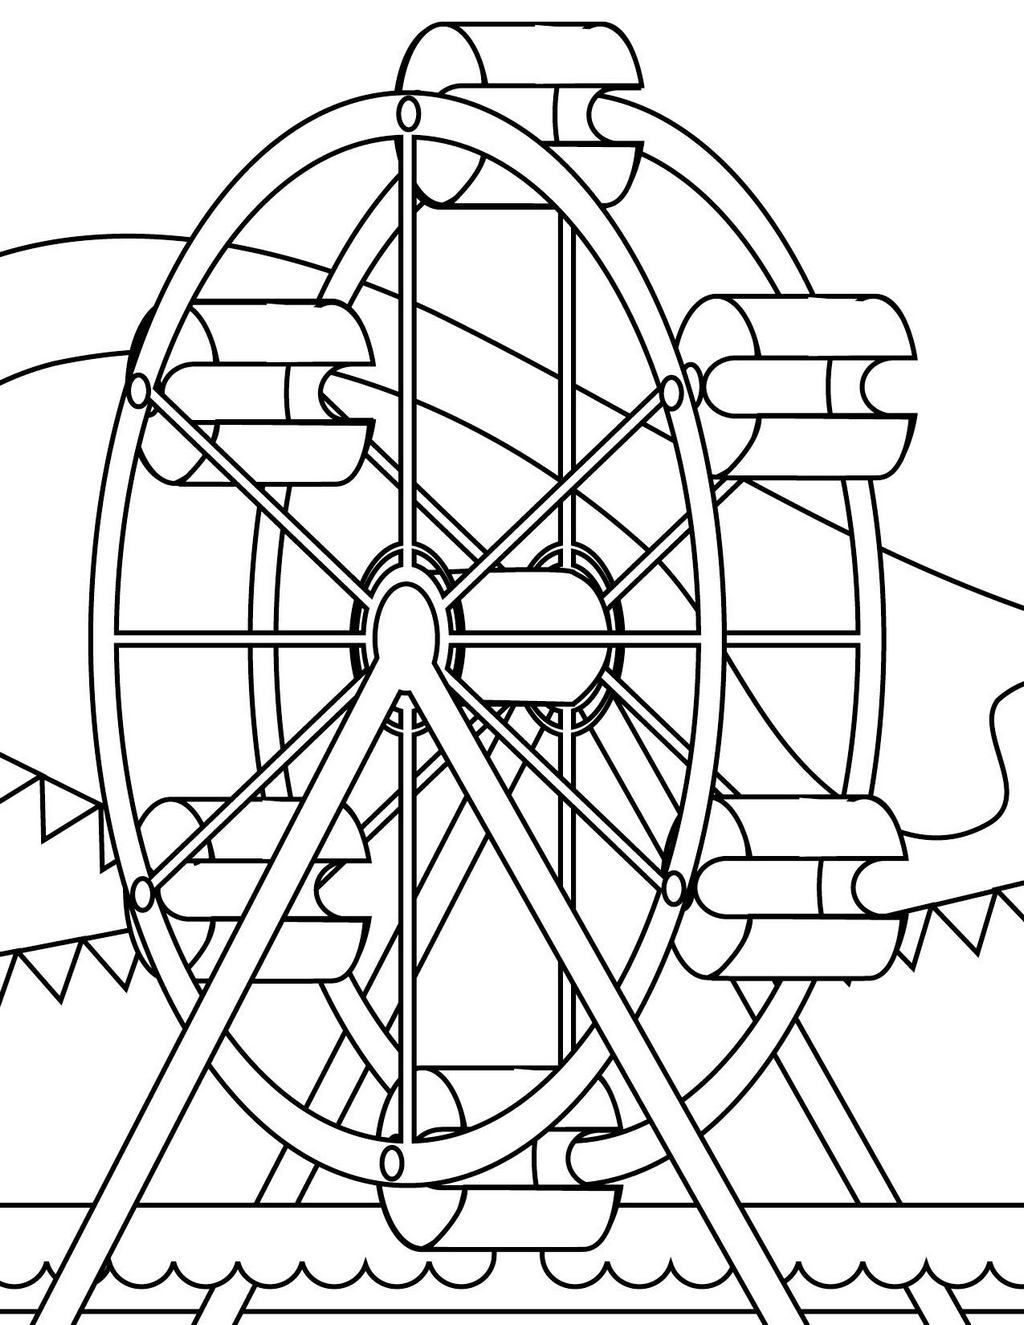 Ferris wheel coloring pages ~ fun ferris wheel coloring sheet for kids | 25 Ferris Wheel ...